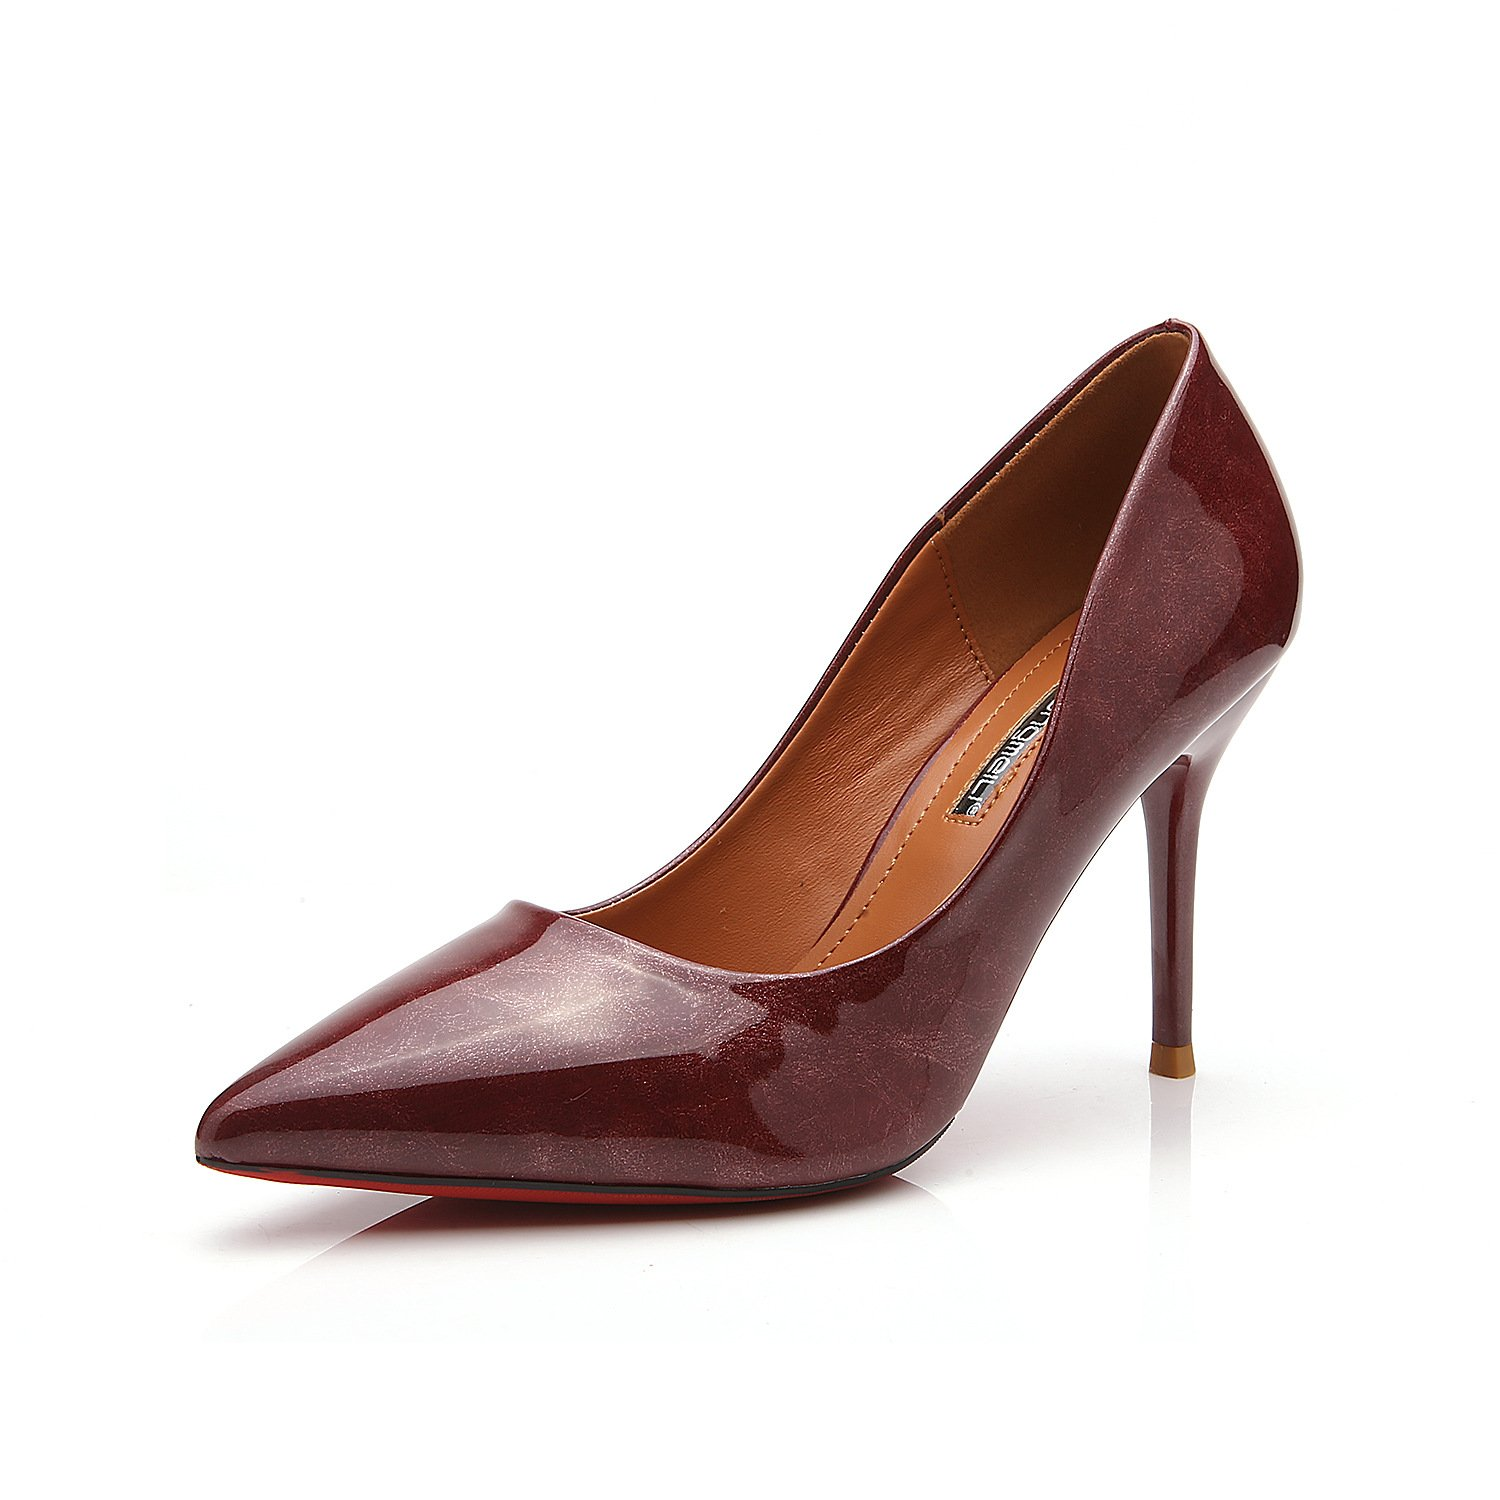 Fine with high heels pointed shoes retro marble texture fine and high-heel shoes single shoes women shoes, wine red,34